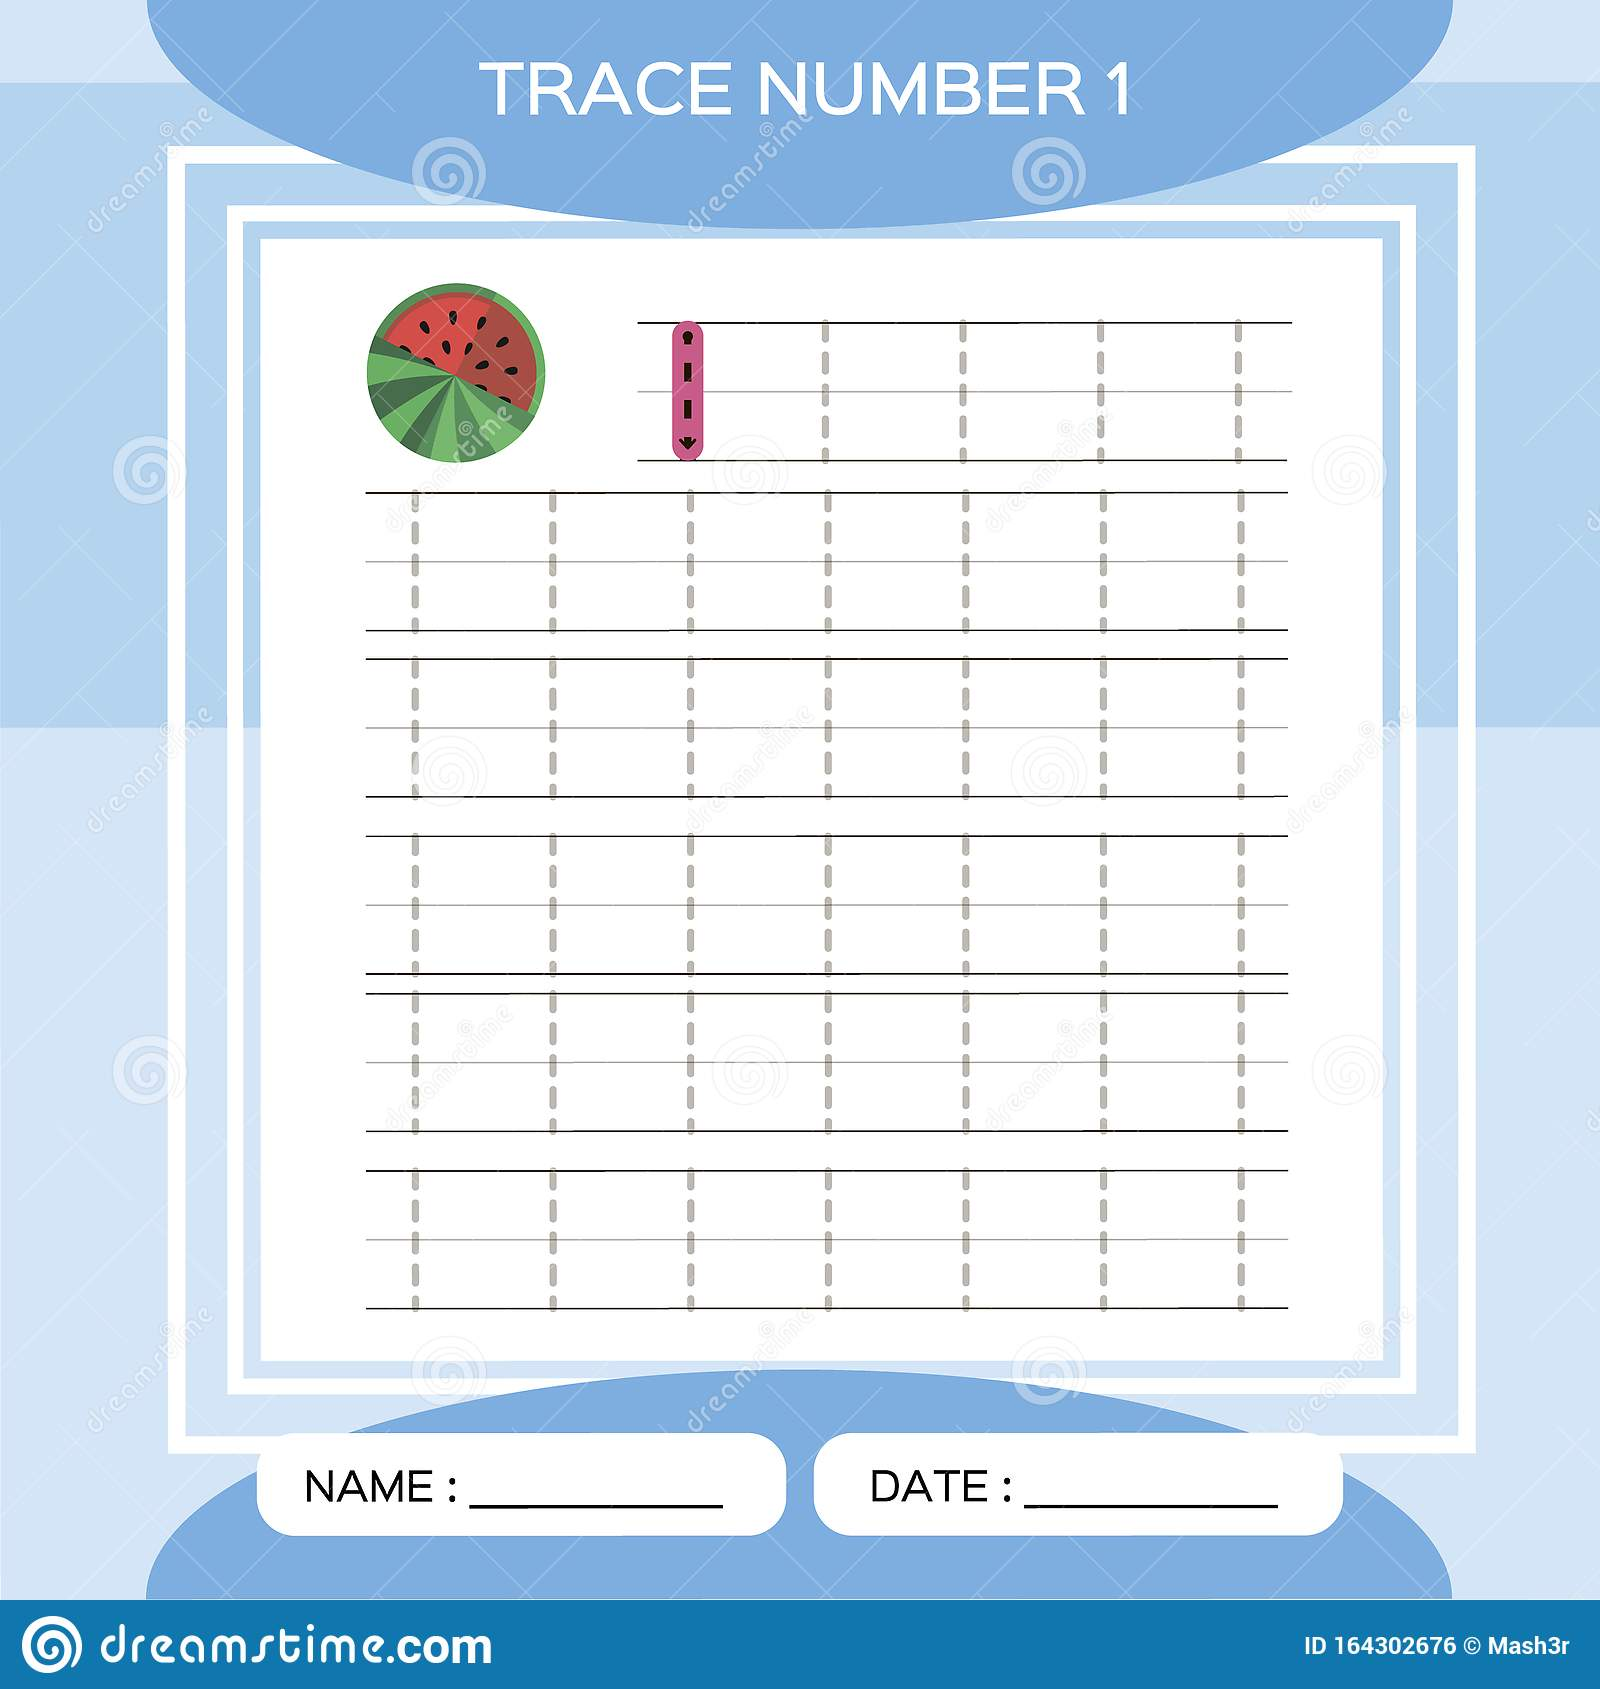 Trace Number 1 One Children Educational Game Kids